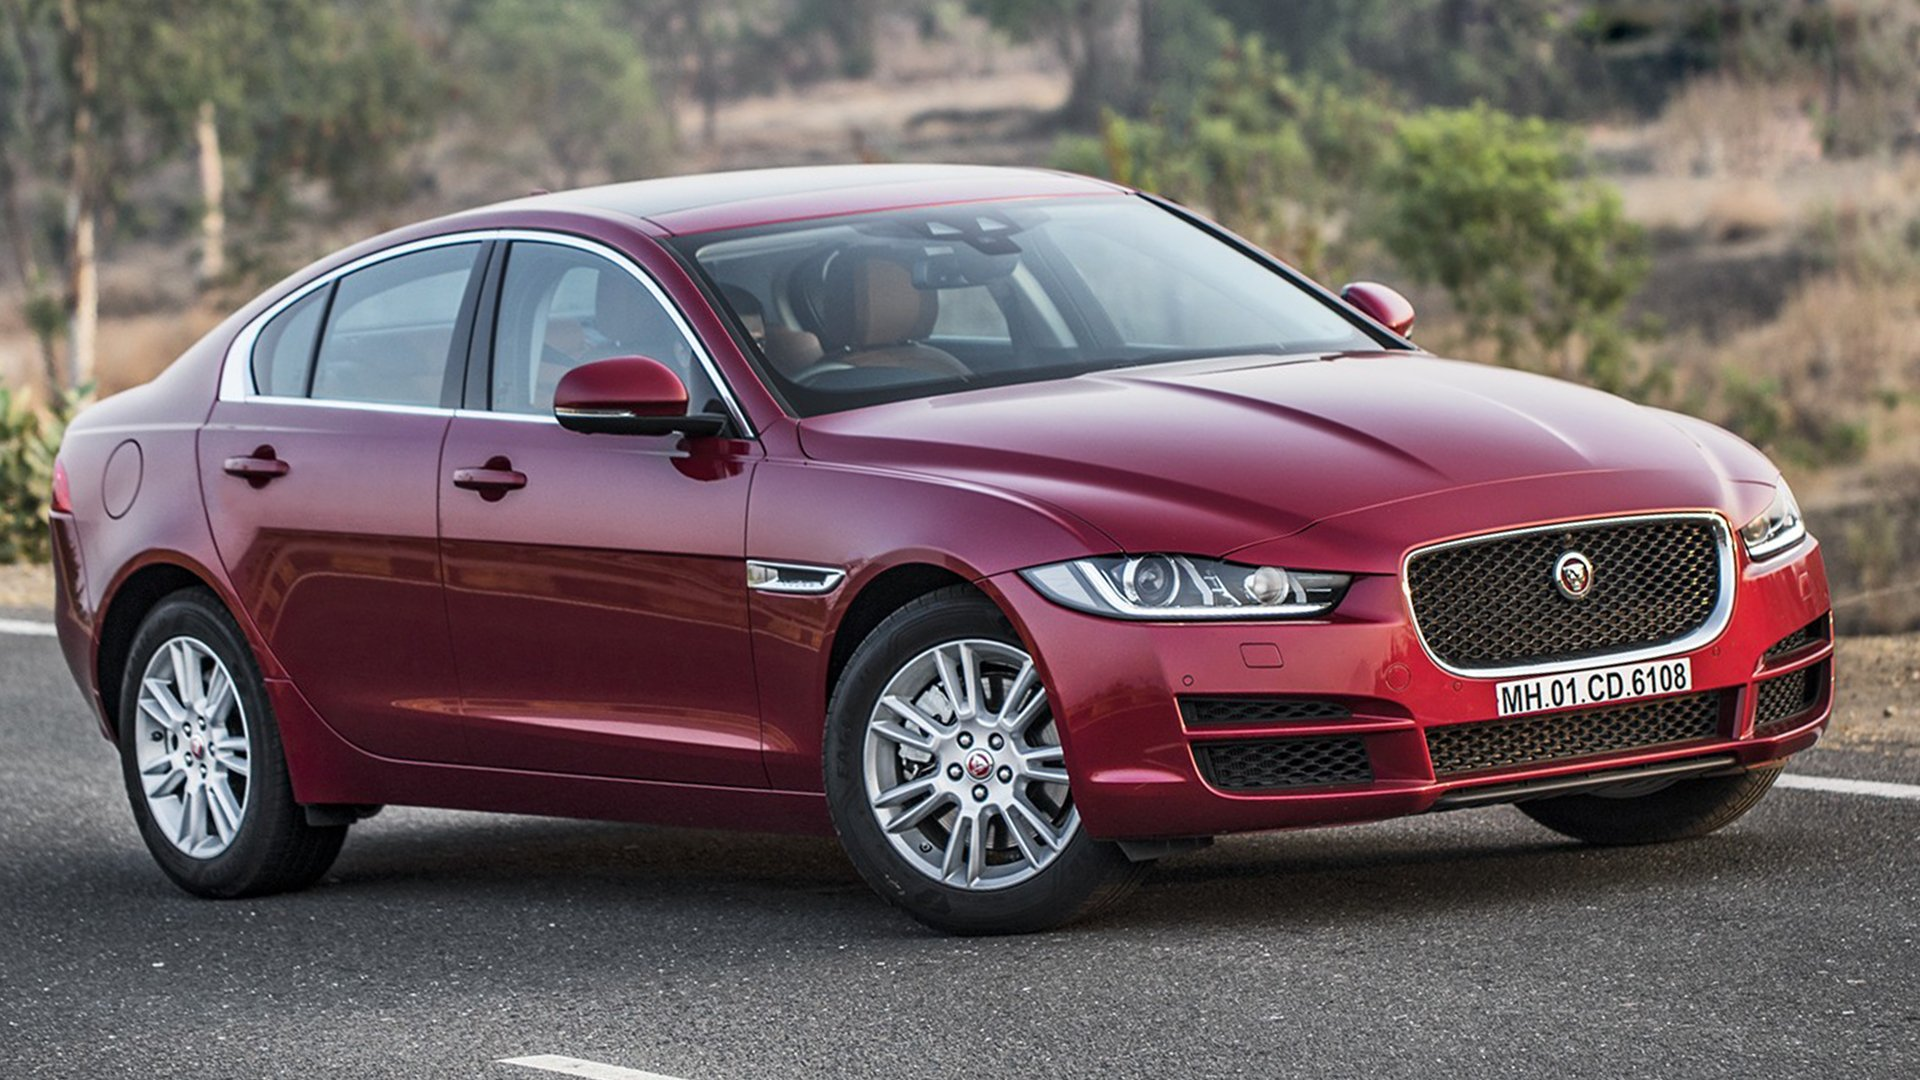 2018 Jaguar XE Diesel US Price HD